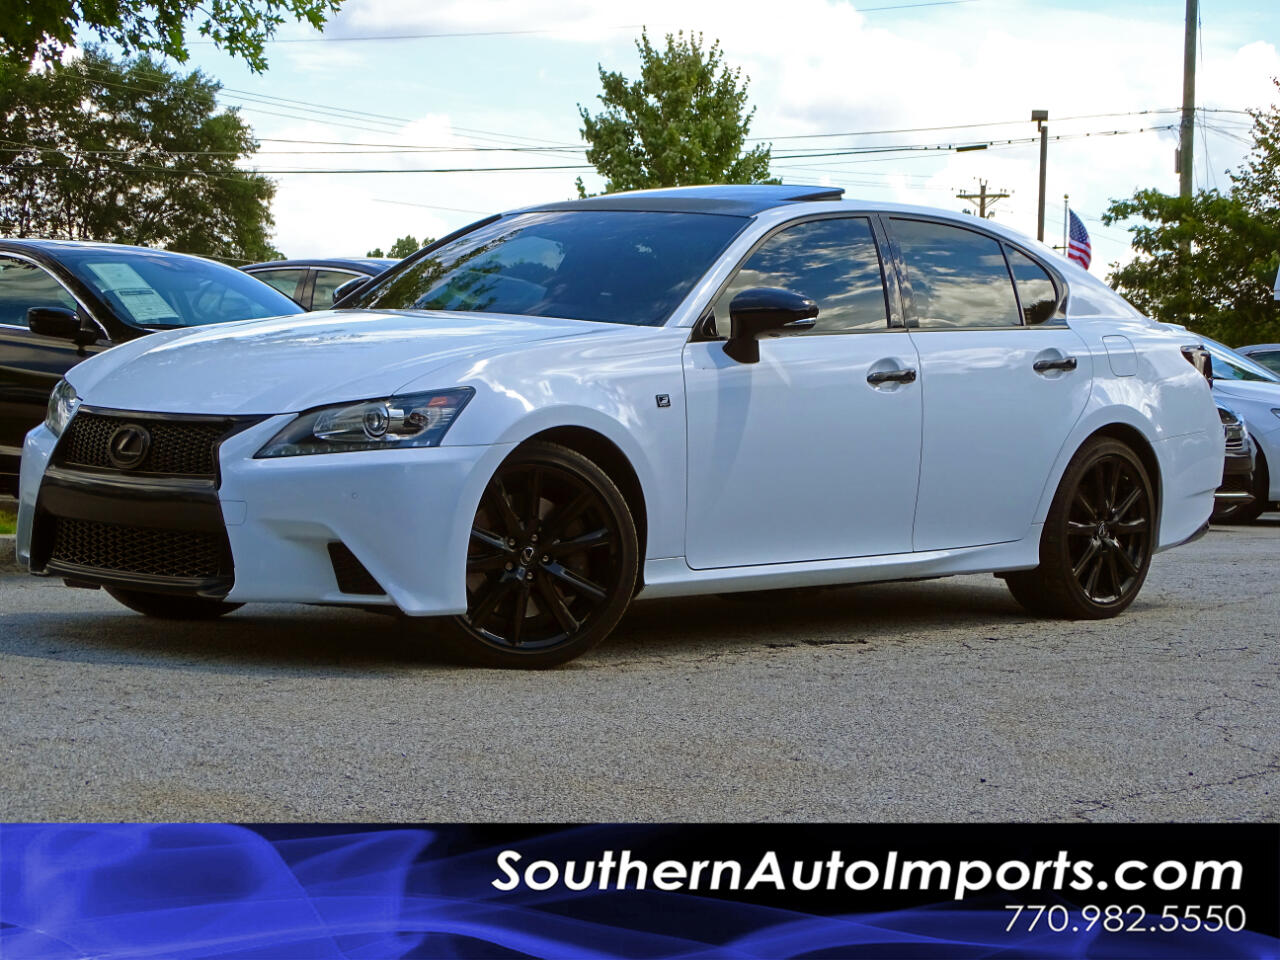 2015 Lexus GS 350 F-Sport Blind Spot Monitor Pkg HID Headlights